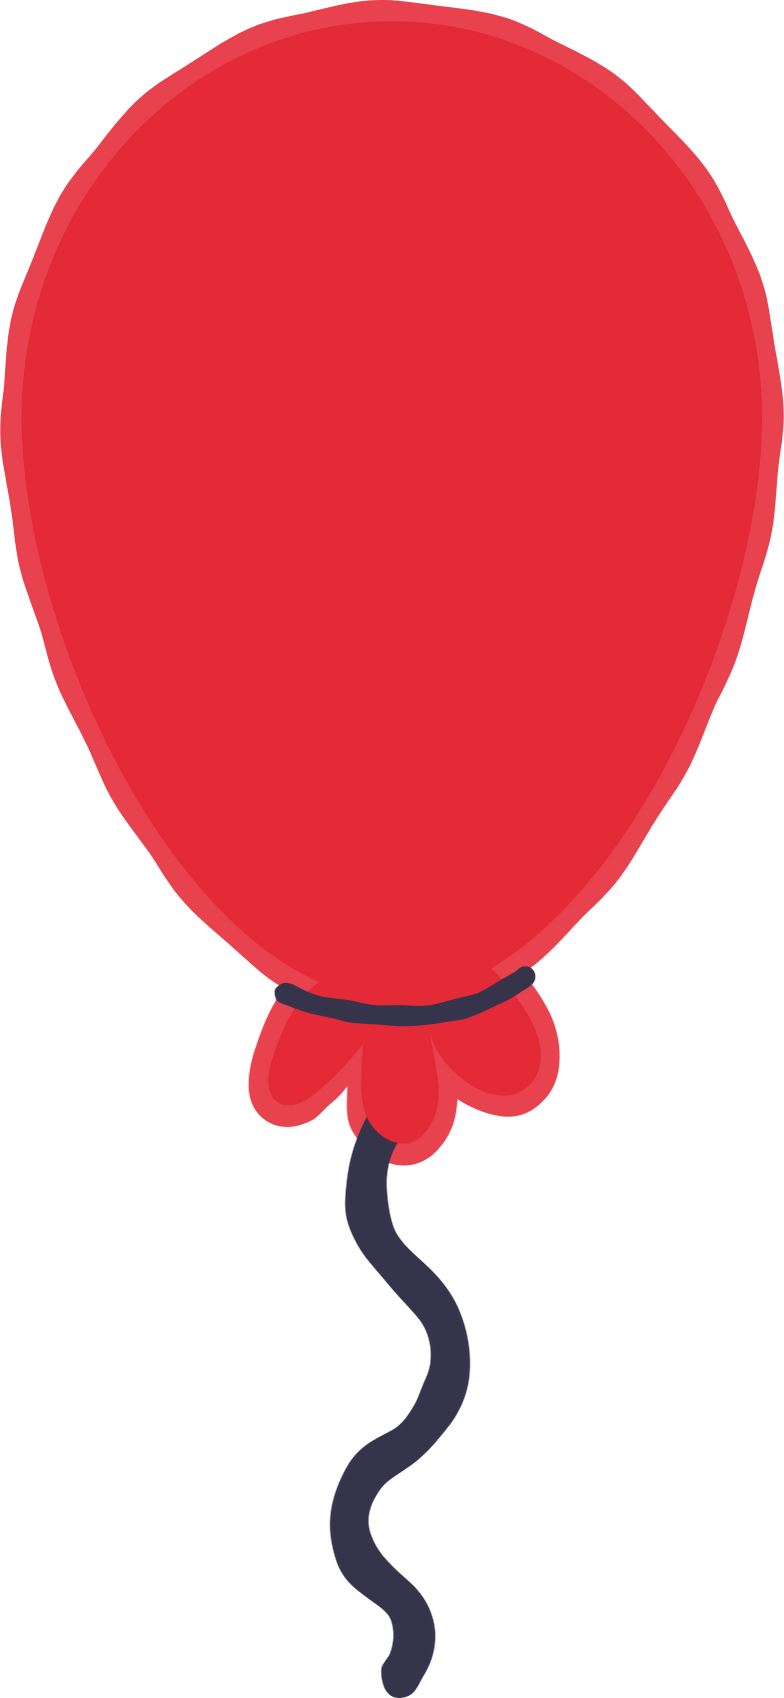 style baloon Vector images in PNG and SVG | Icons8 Illustrations